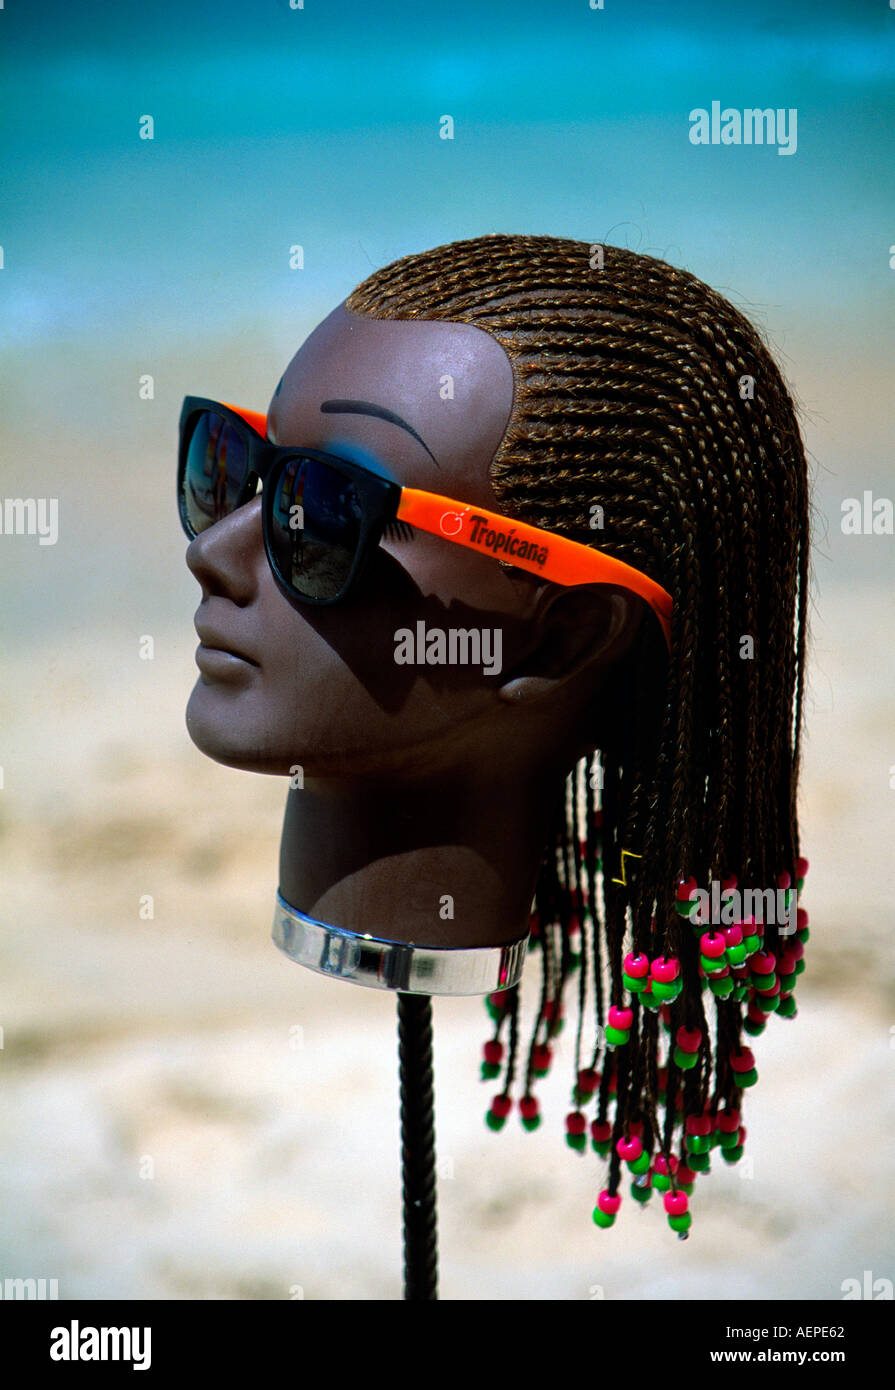 dummy display of sunglass boutique island of barbados archipelago of the lesser antilles caribbean editorial use only - Stock Image